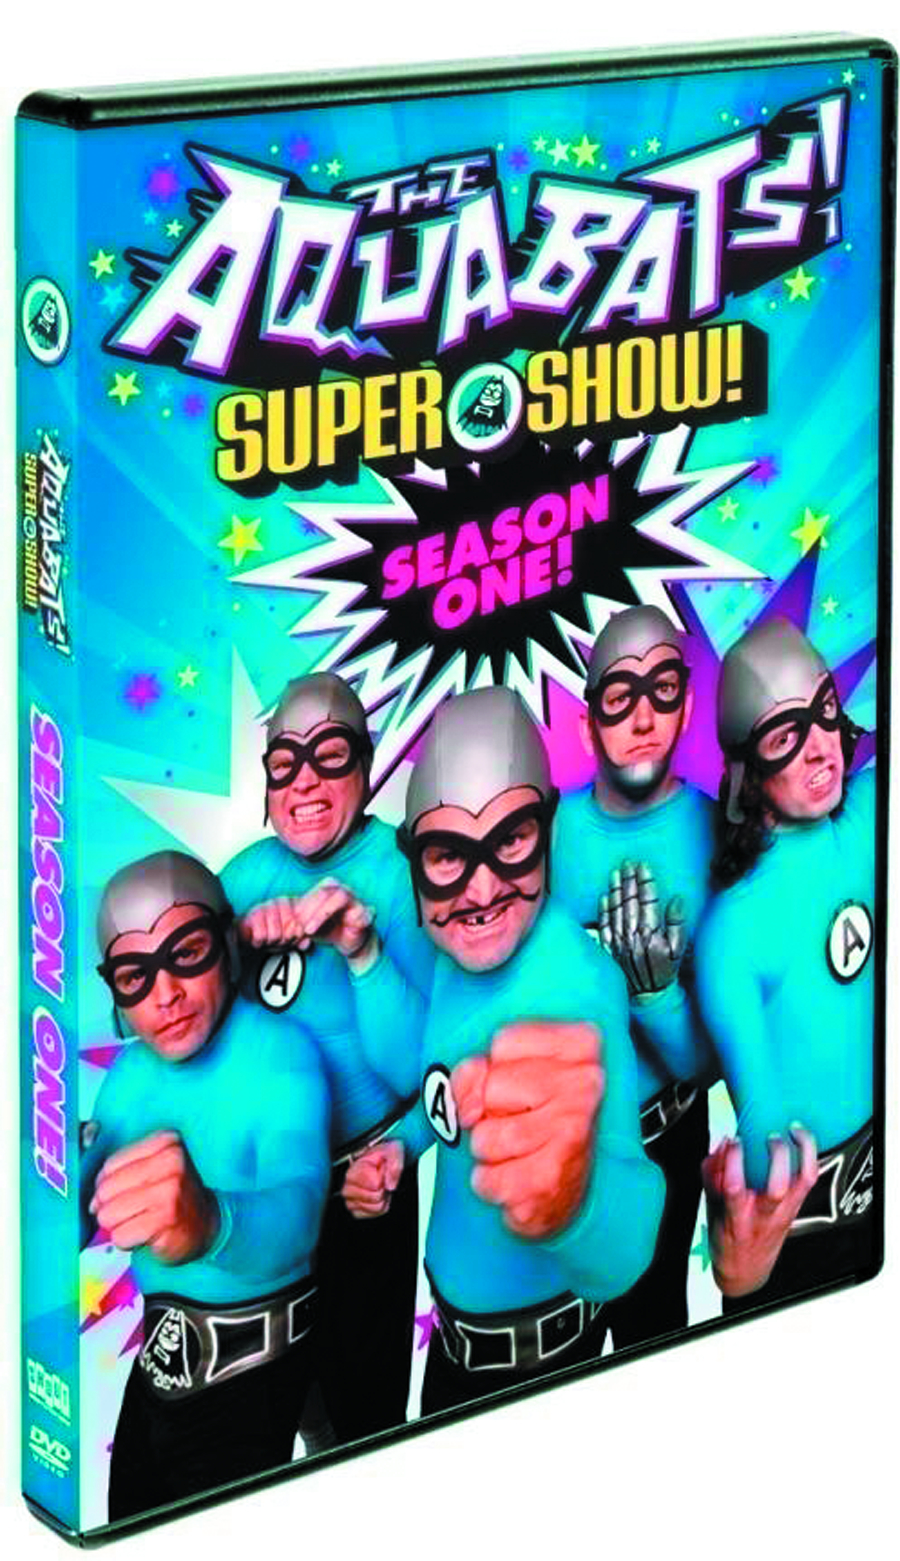 AQUABATS SUPER SHOW DVD SEA 01